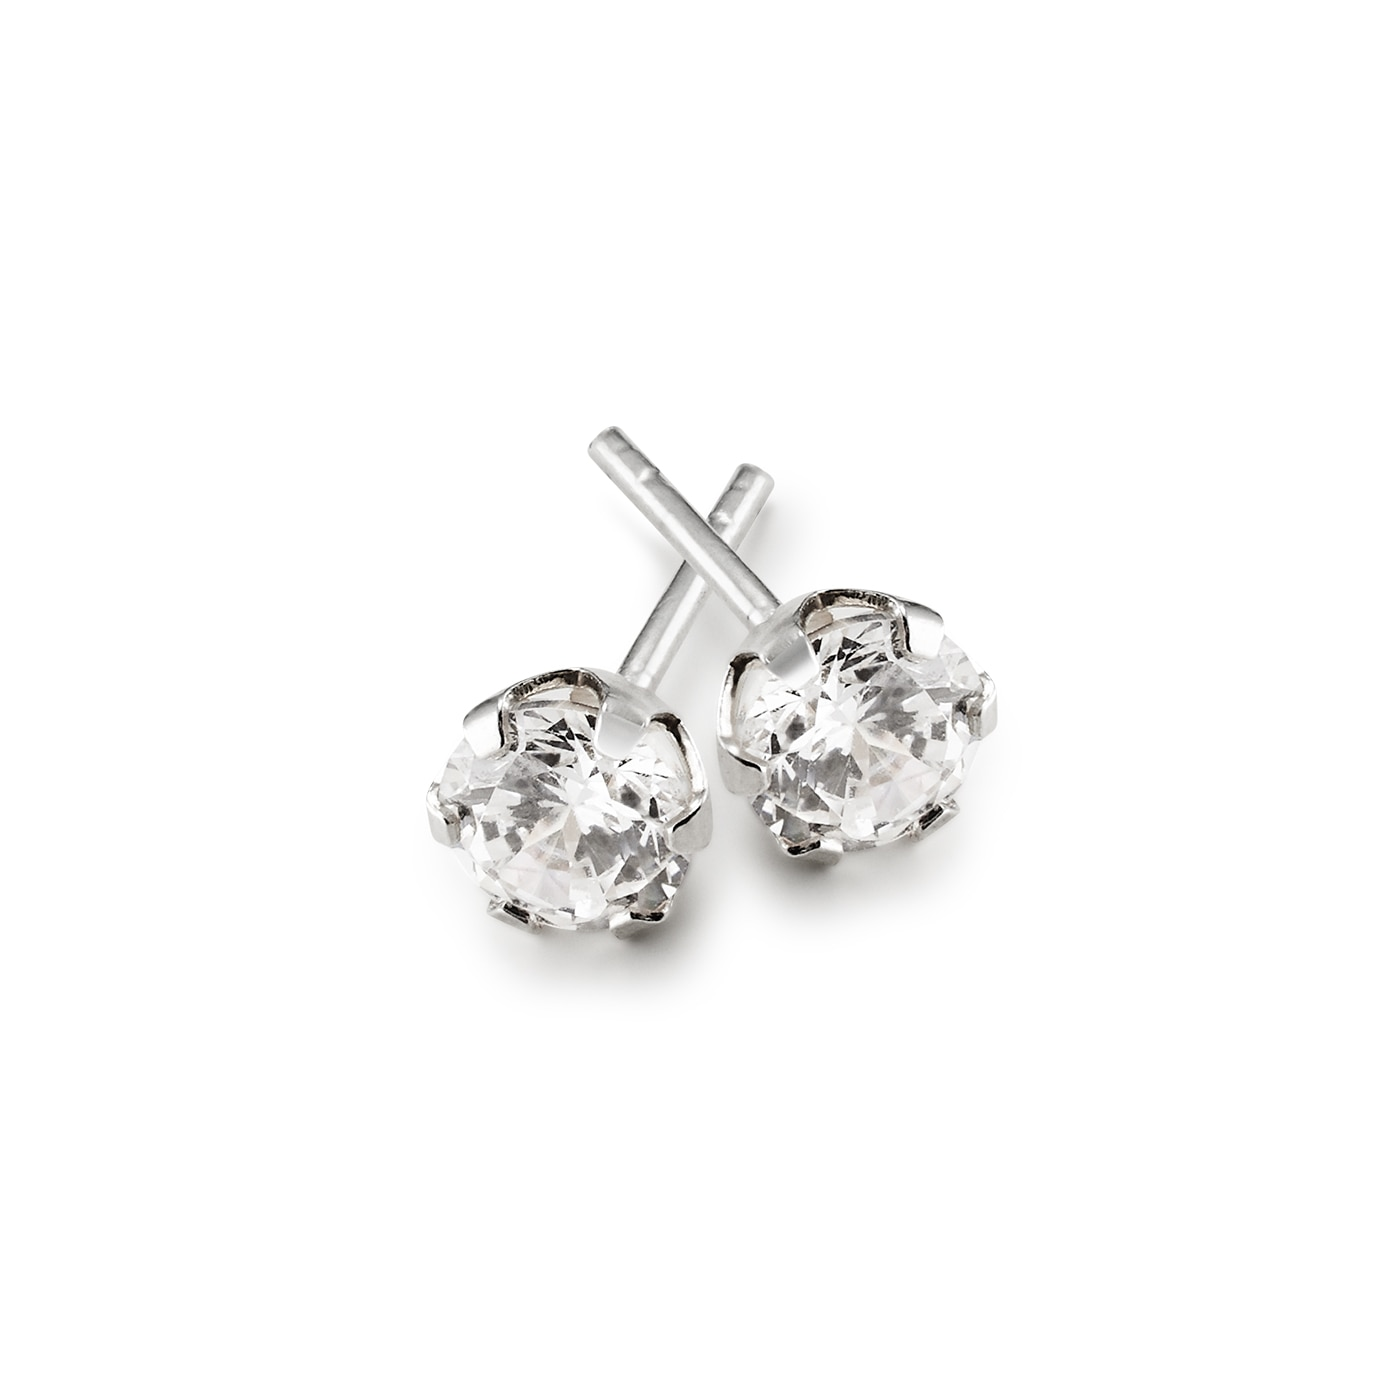 Studs Cz earrings M